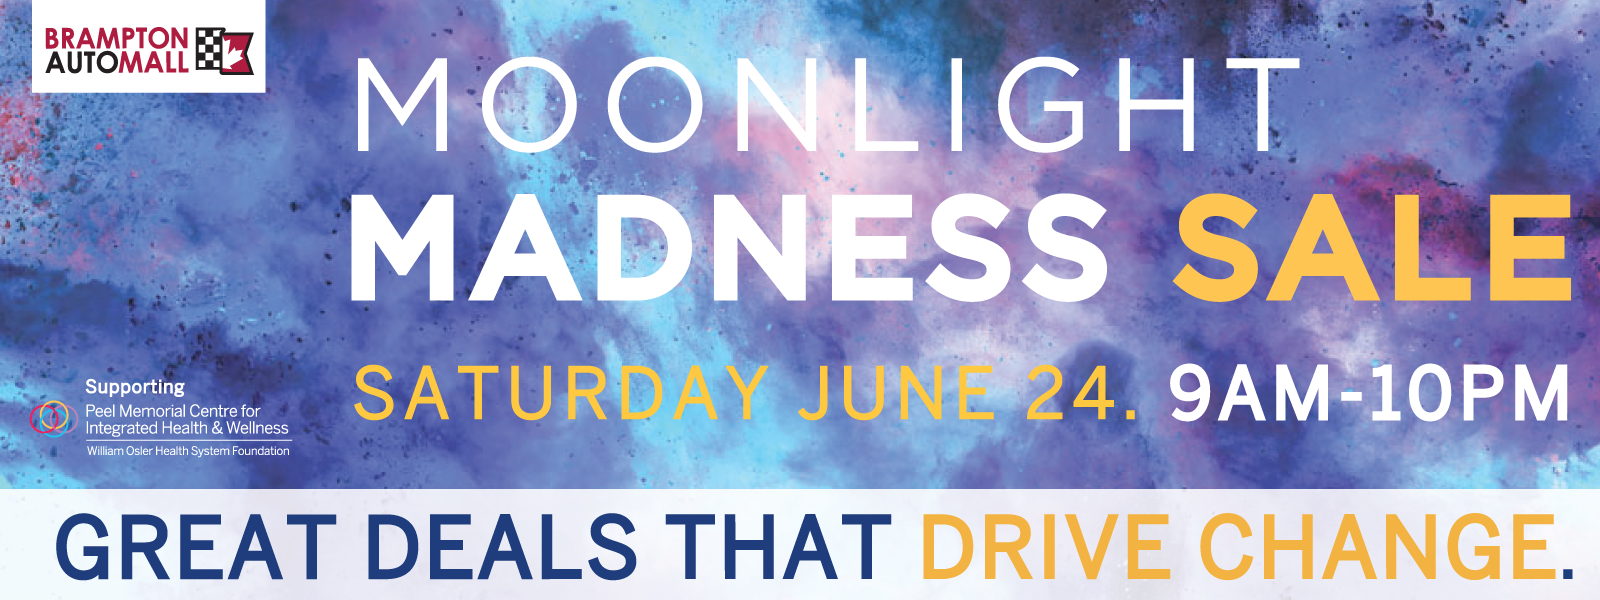 moonlight-madness-sale